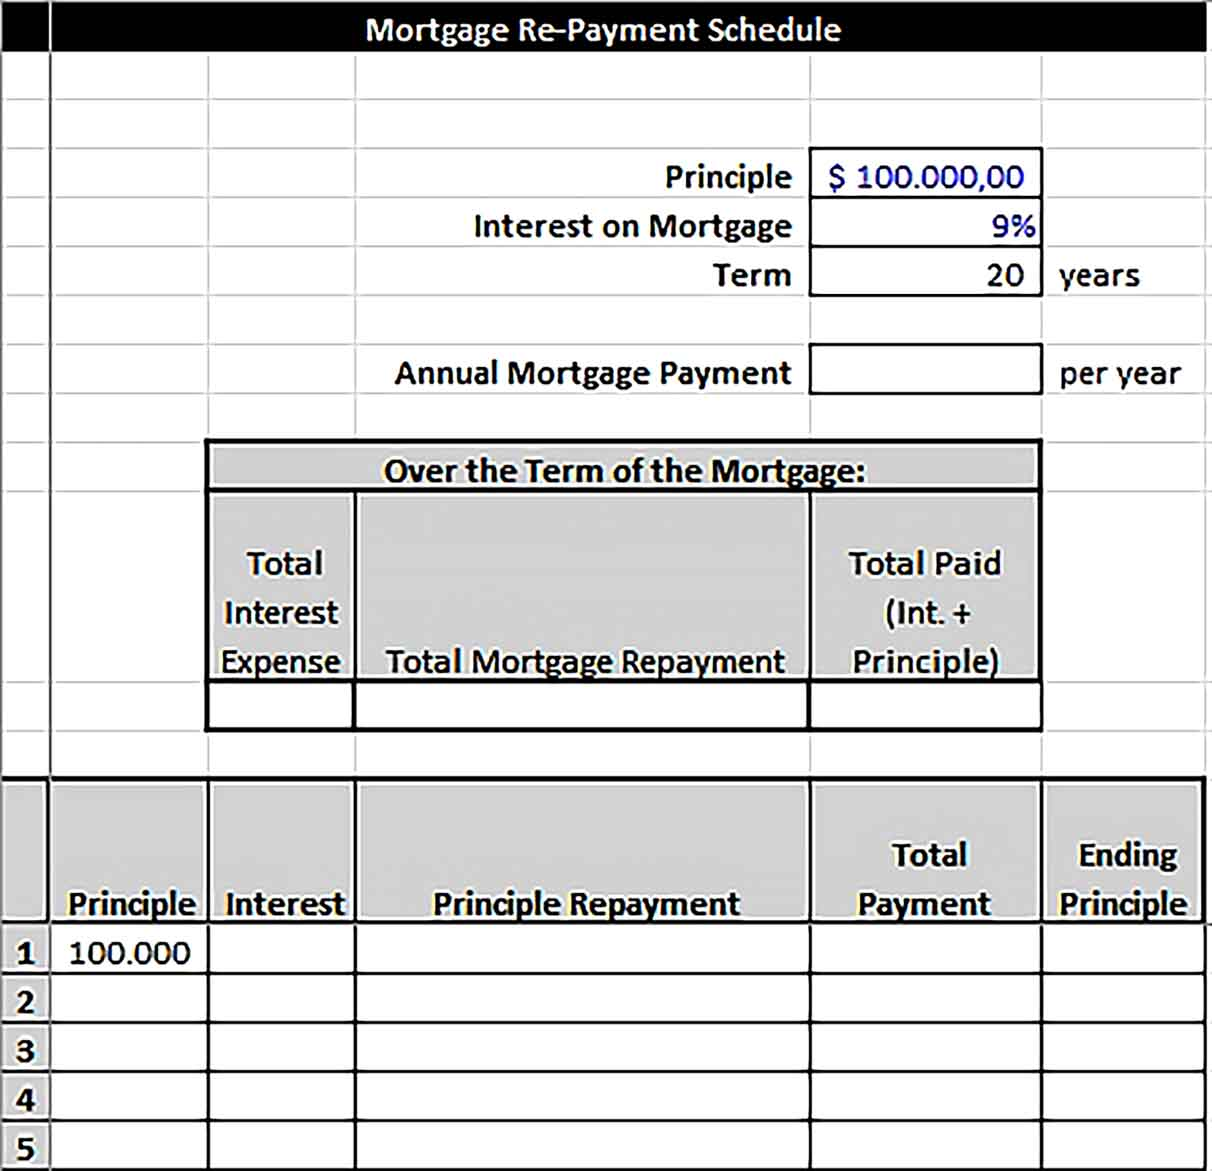 Template Mortgage Re Payment Schedule in Excel Sample